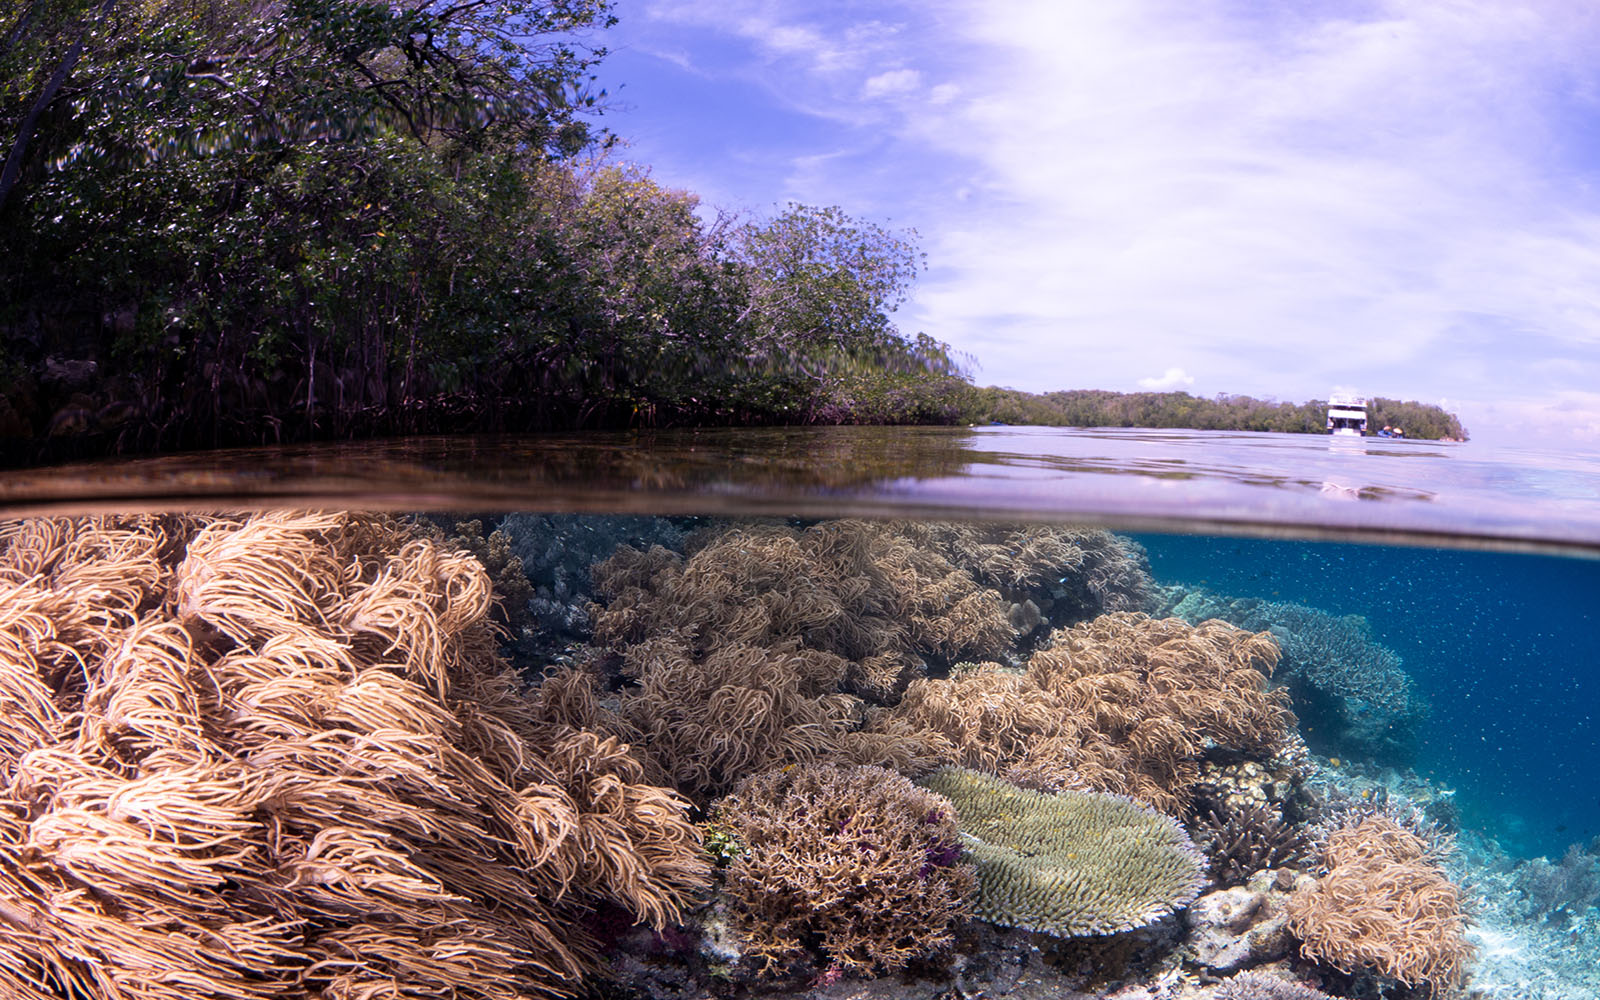 soft corals and mangroves photographed by Snorkel Vacations on a snorkeling trip to Raja Ampat